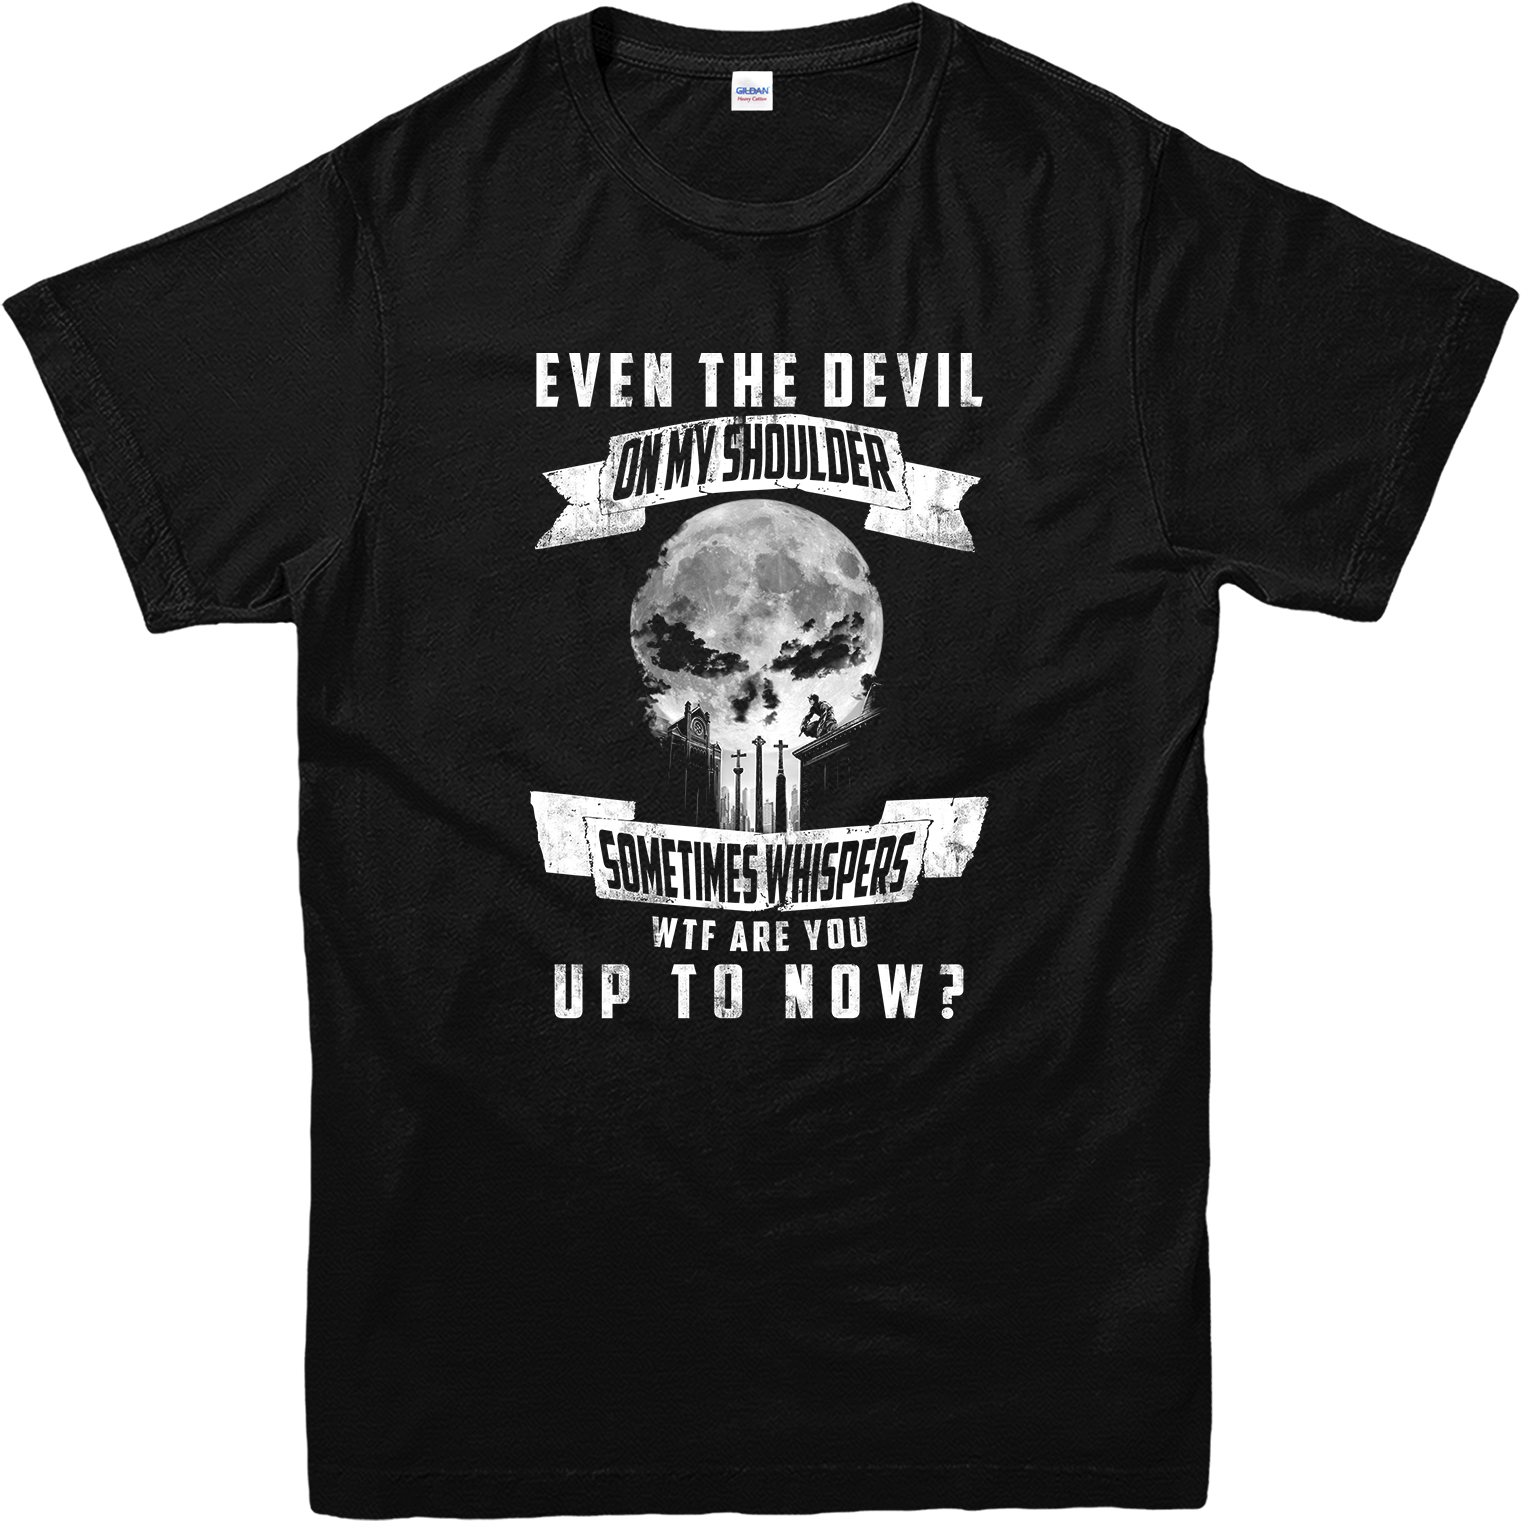 Black t shirt ebay - The Punisher T Shirt Even The Devil Quote Inspired Design Top Etdp